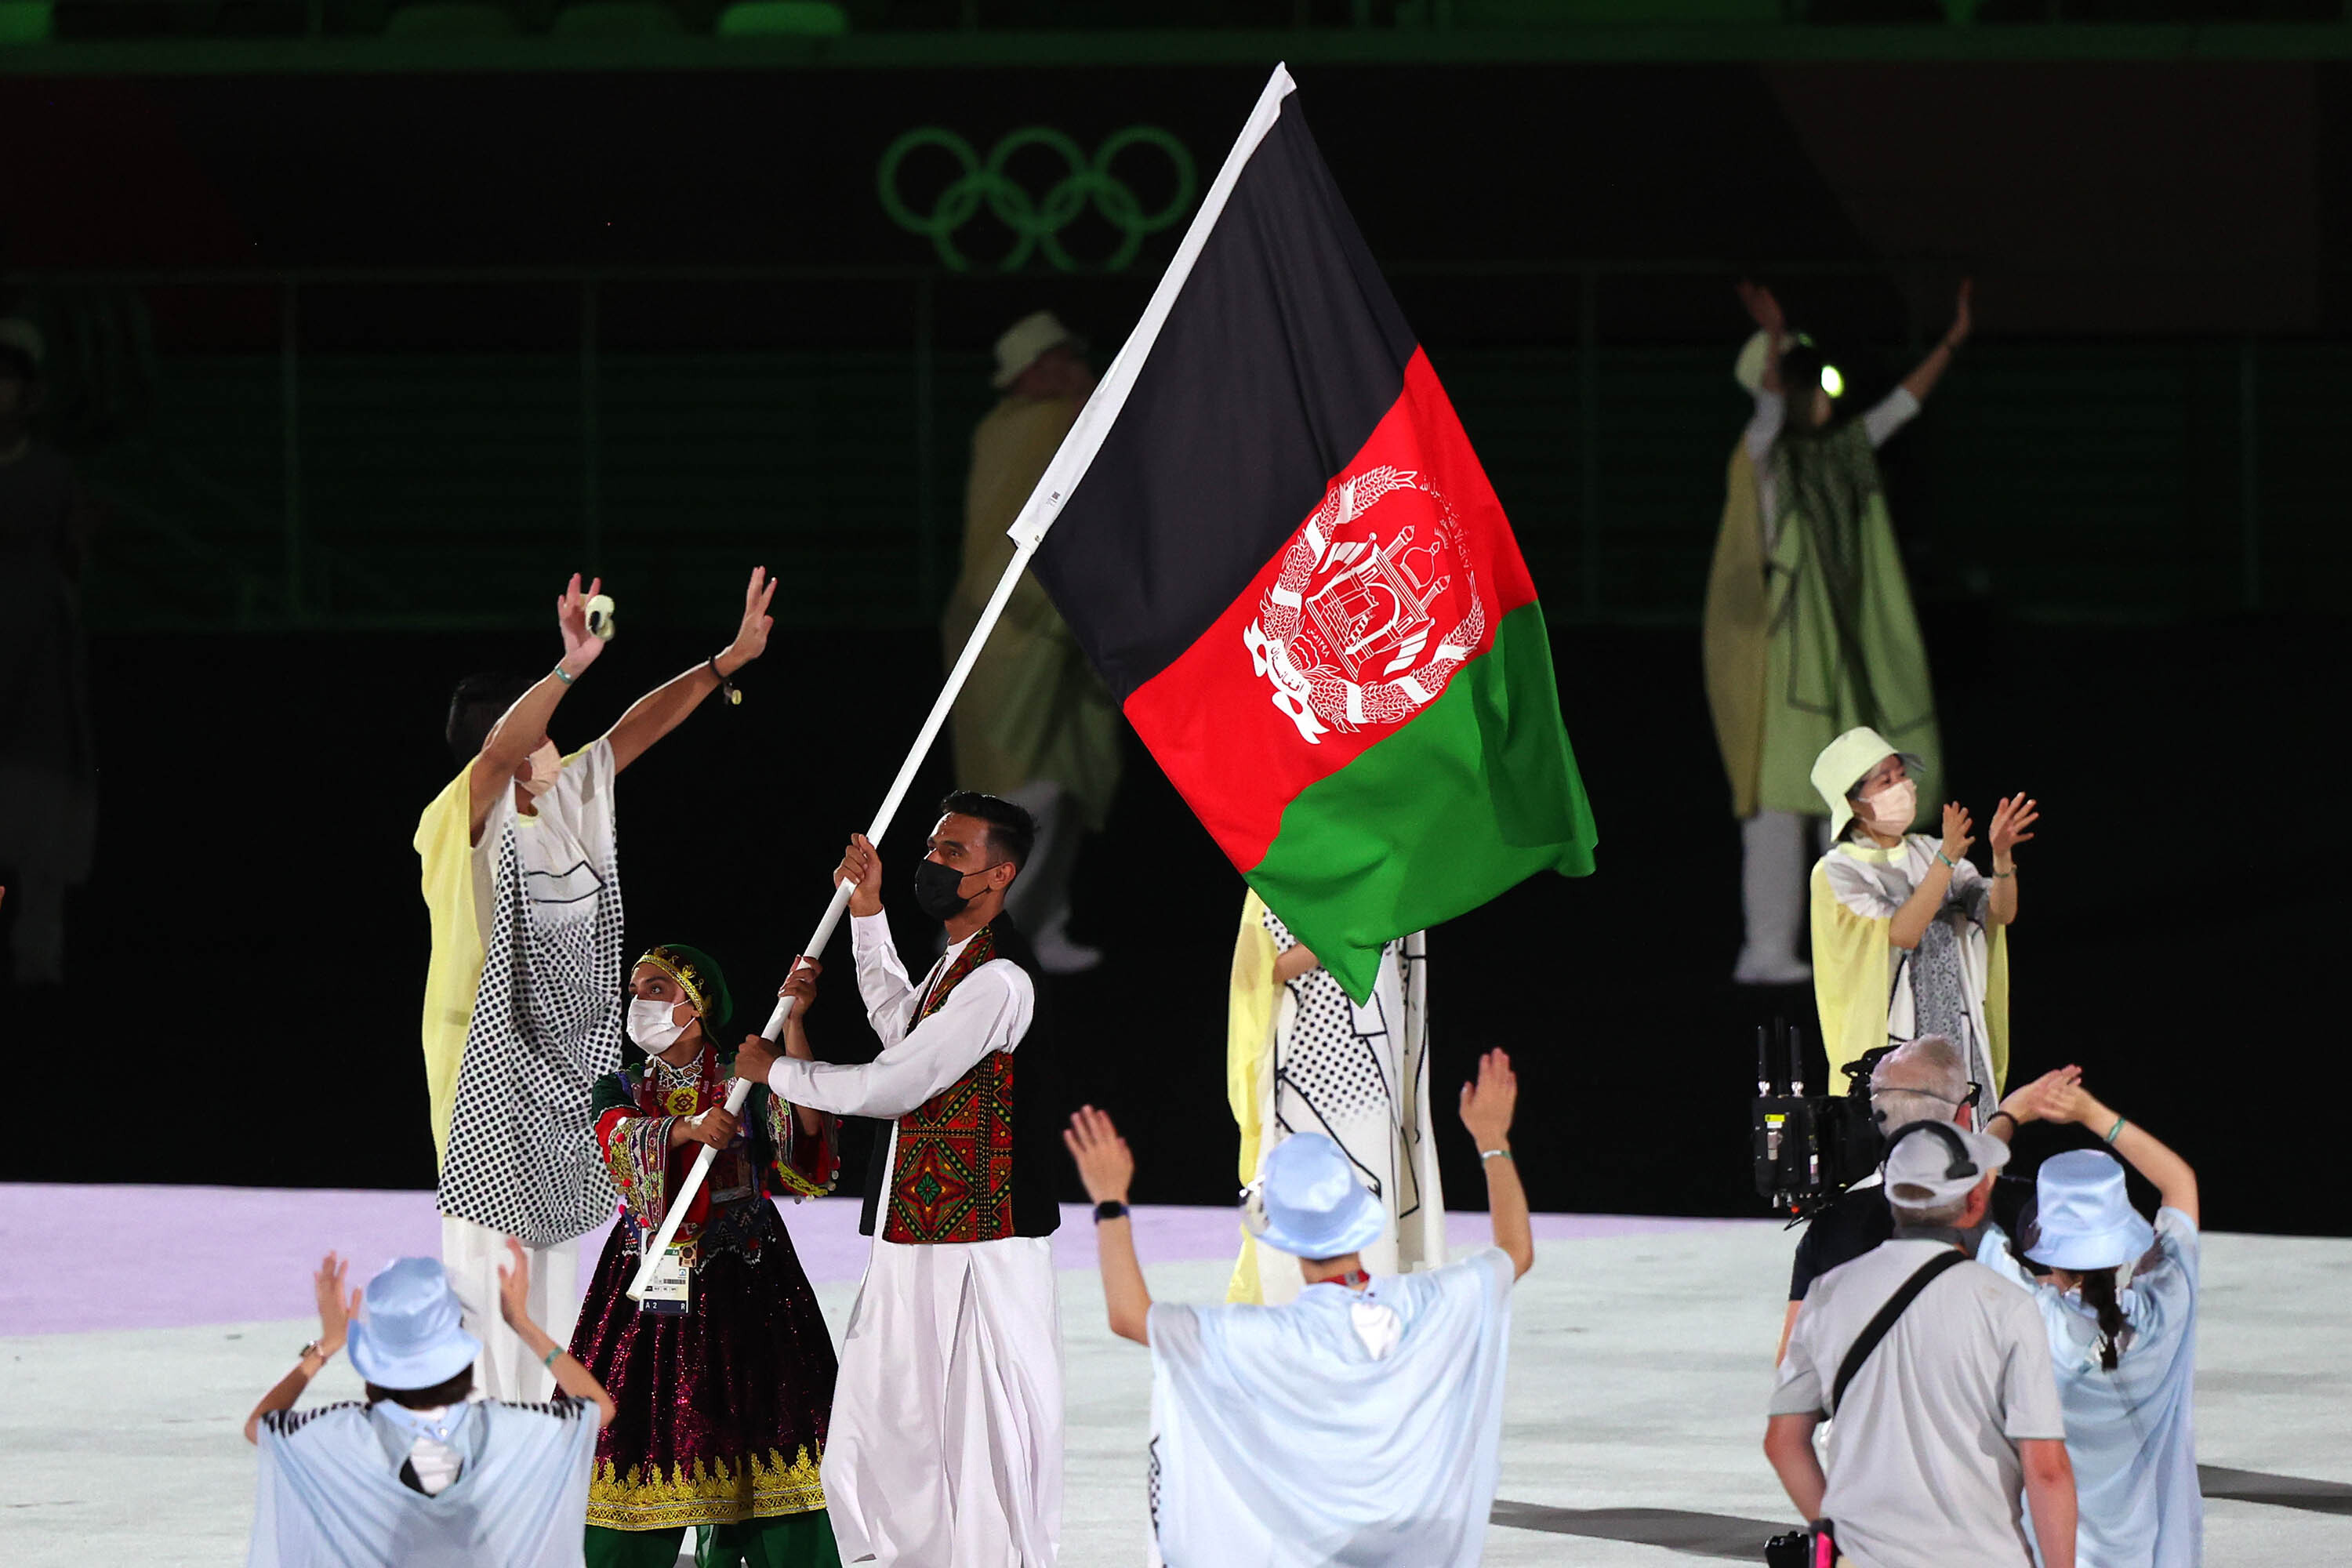 Afghanistan flag to feature in Paralympic opening ceremony as a show of 'solidarity'